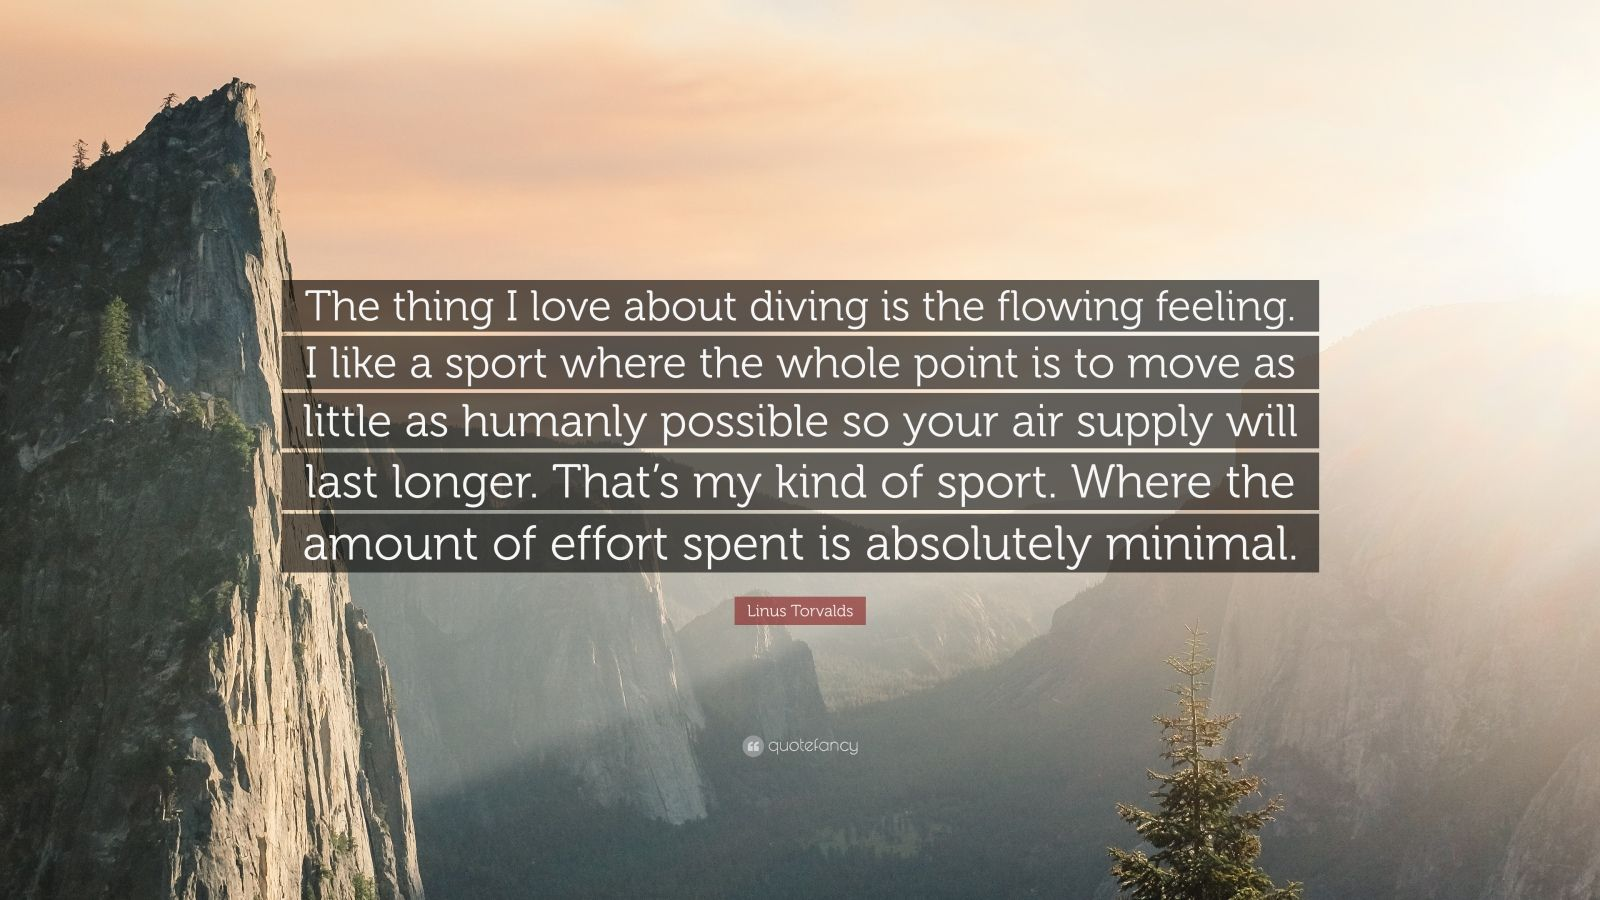 """Linus Torvalds Quote: """"The thing I love about diving is the flowing feeling. I like a sport where the whole point is to move as little as humanly possible so your air supply will last longer. That's my kind of sport. Where the amount of effort spent is absolutely minimal."""""""